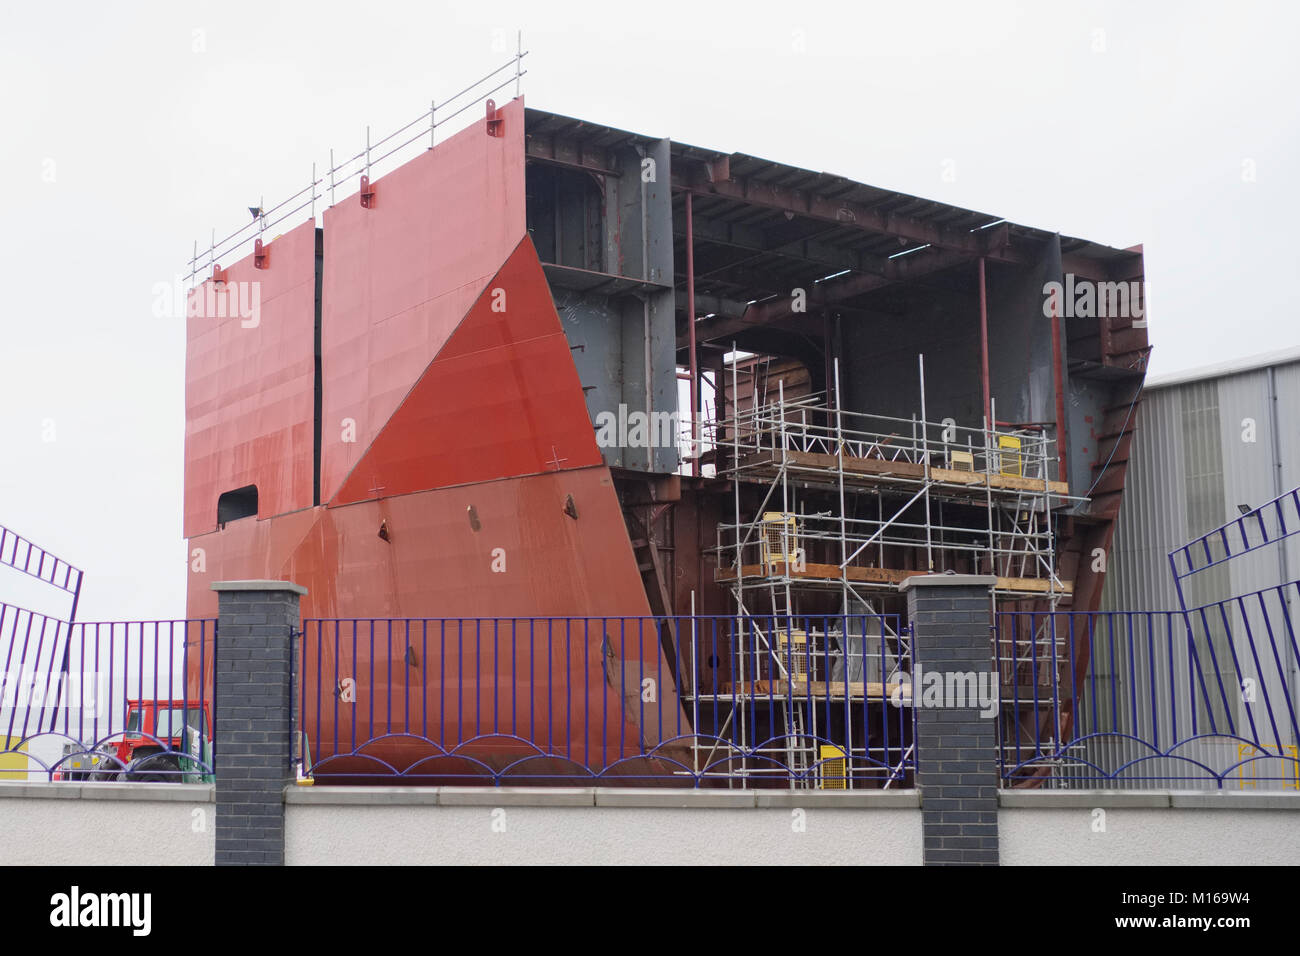 Shipbuilding in progress with scaffold around large steel vessel - Stock Image